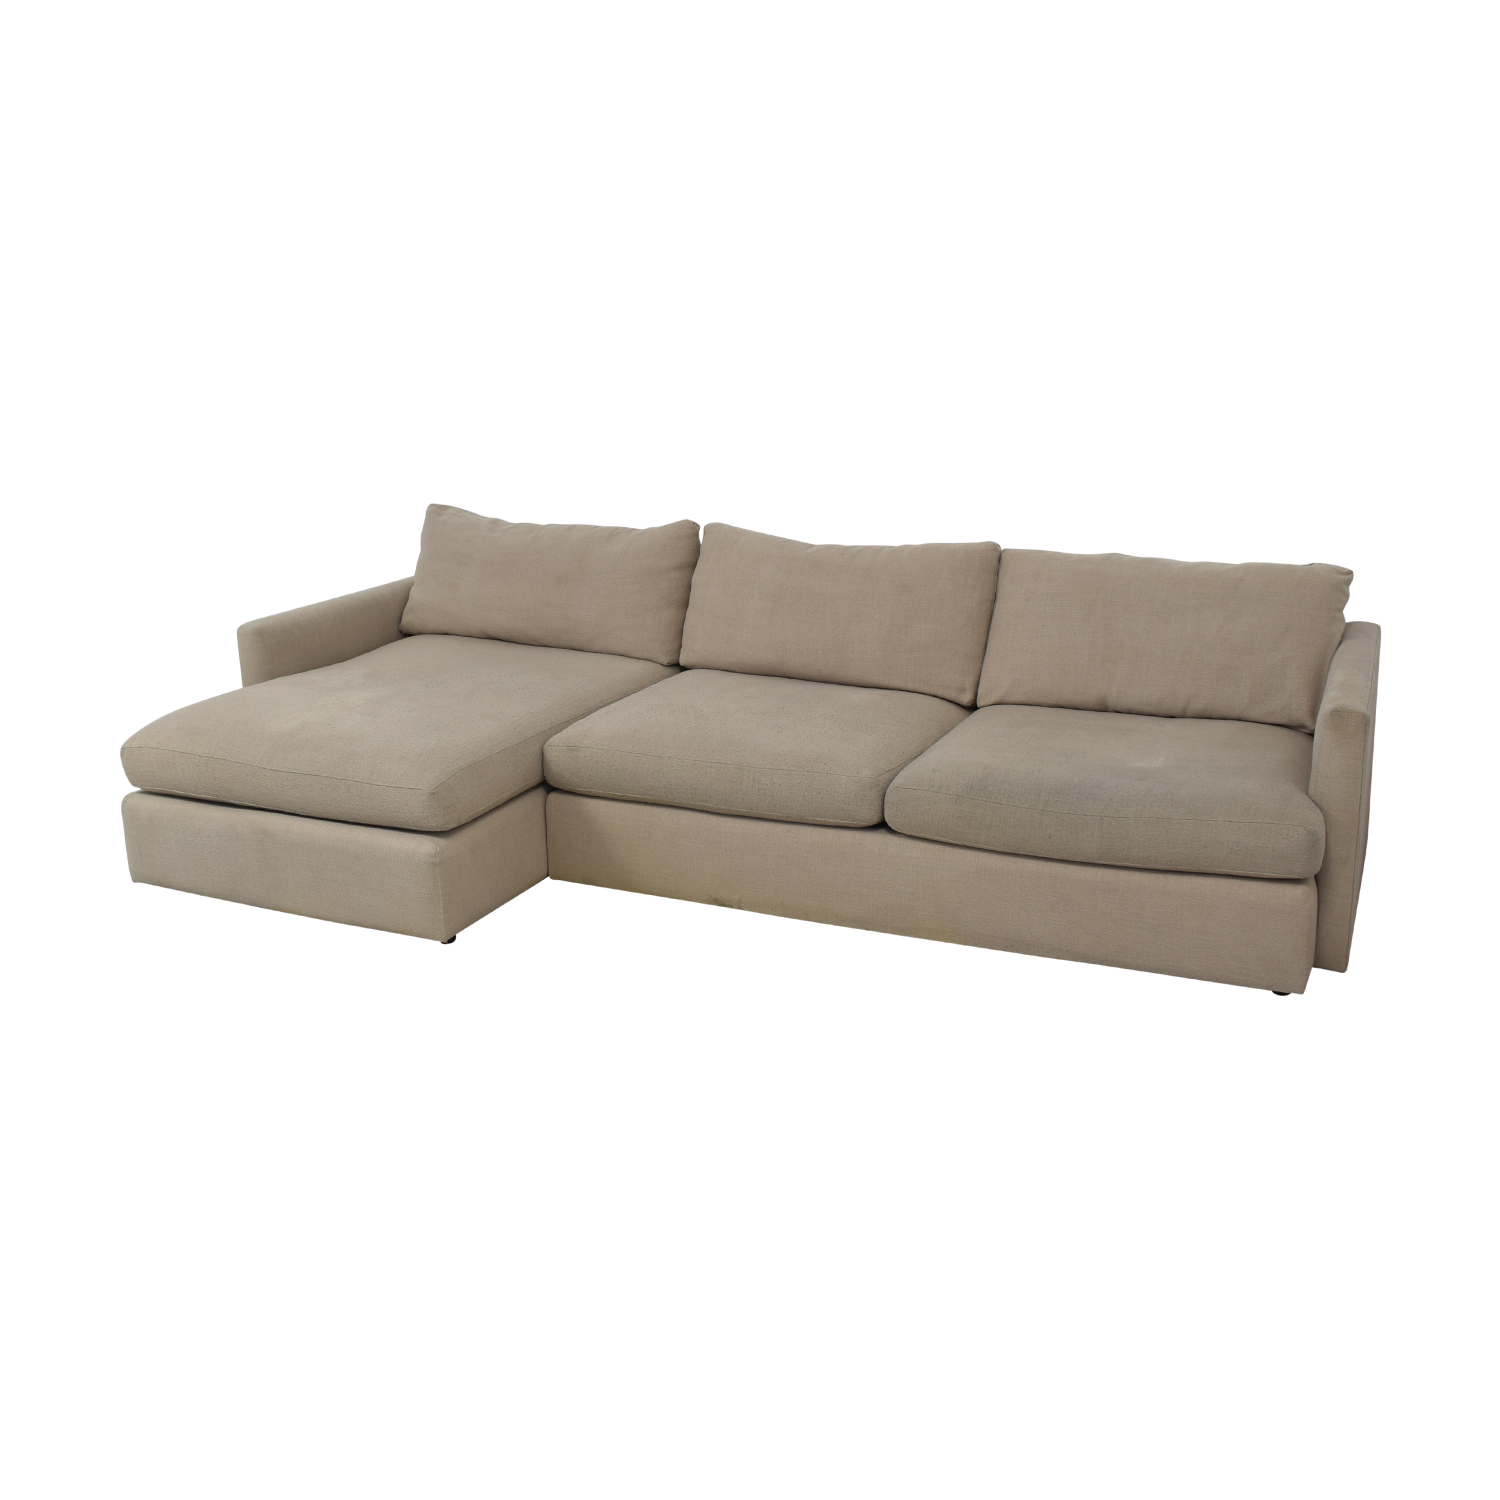 Crate & Barrel Axis II Chaise Sectional Sofa sale